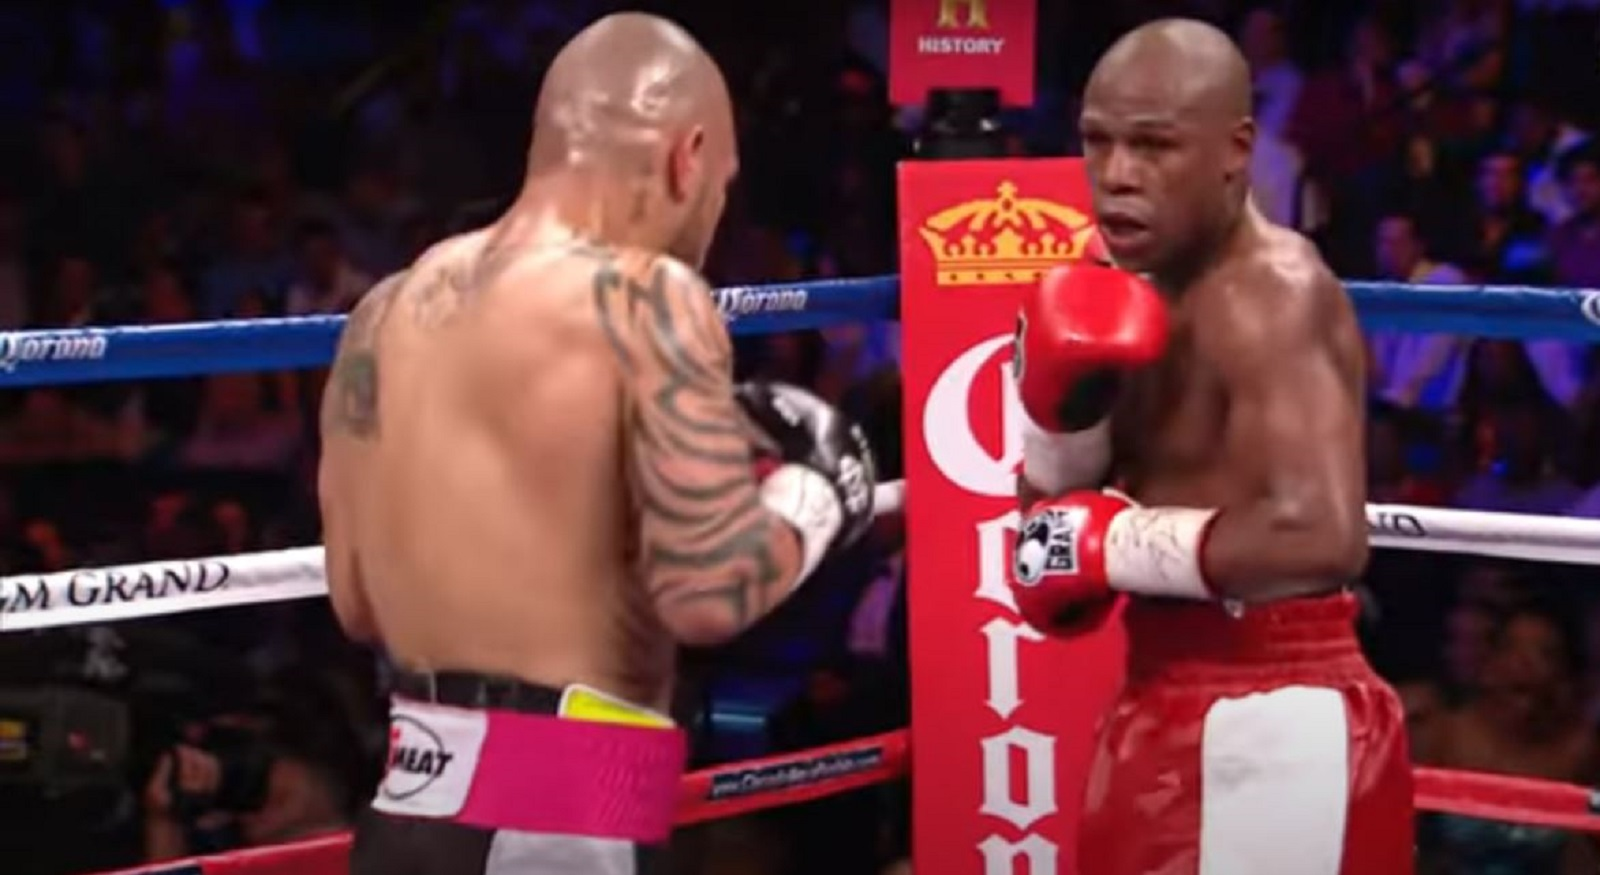 Mayweather Offers Reward After His Home Gets Robbed